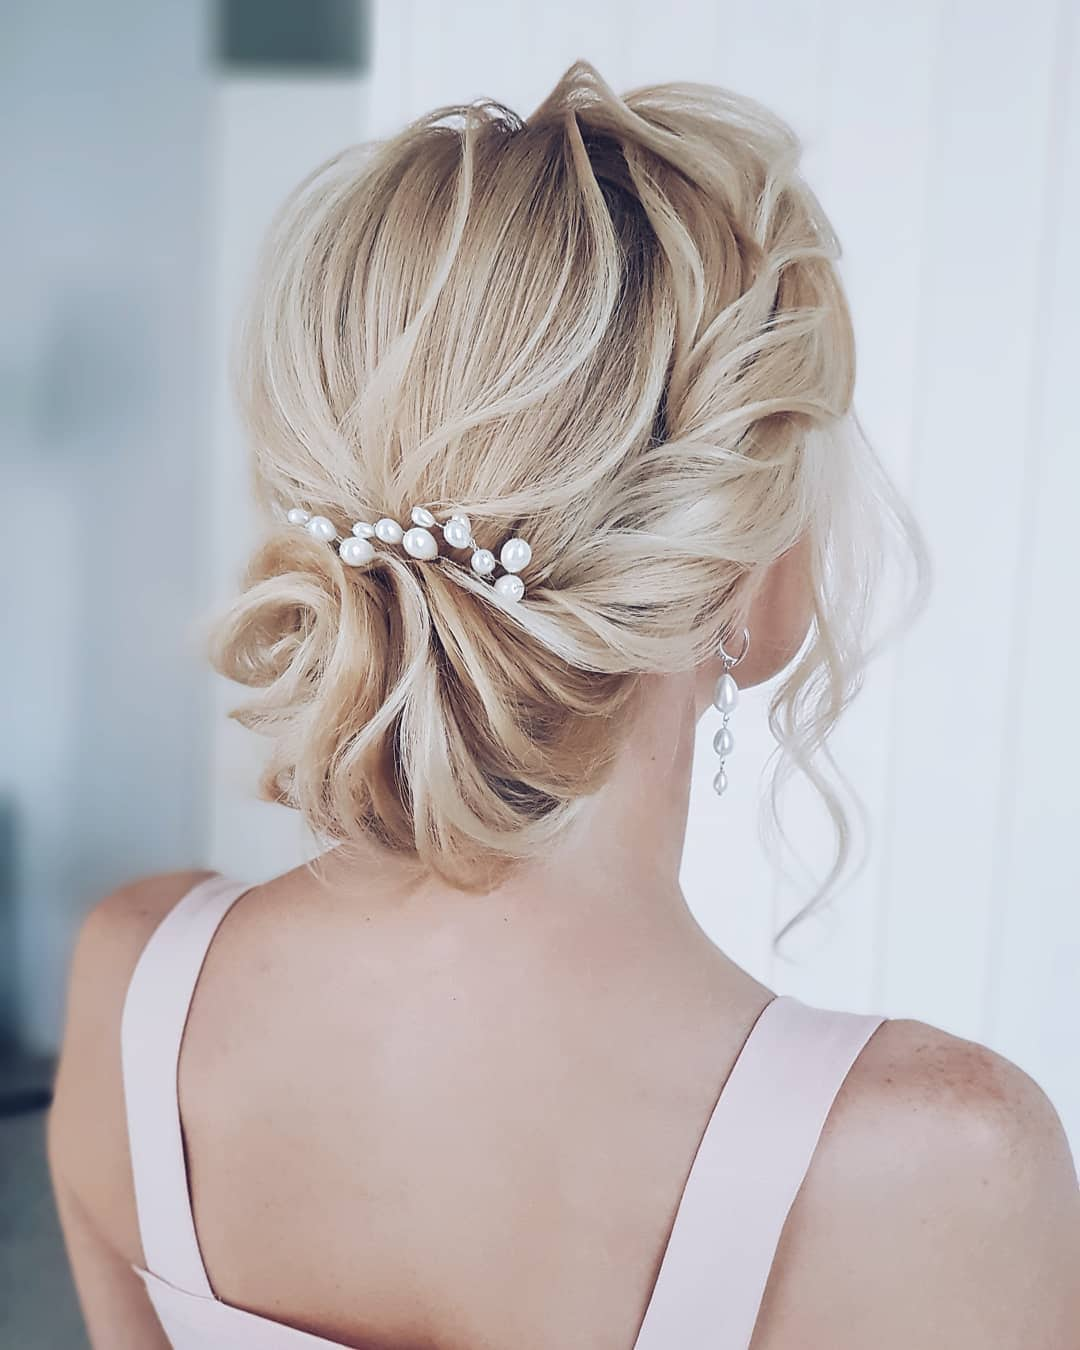 Woman with blonde hair styled into a romantic low wavy bun with pearl pins